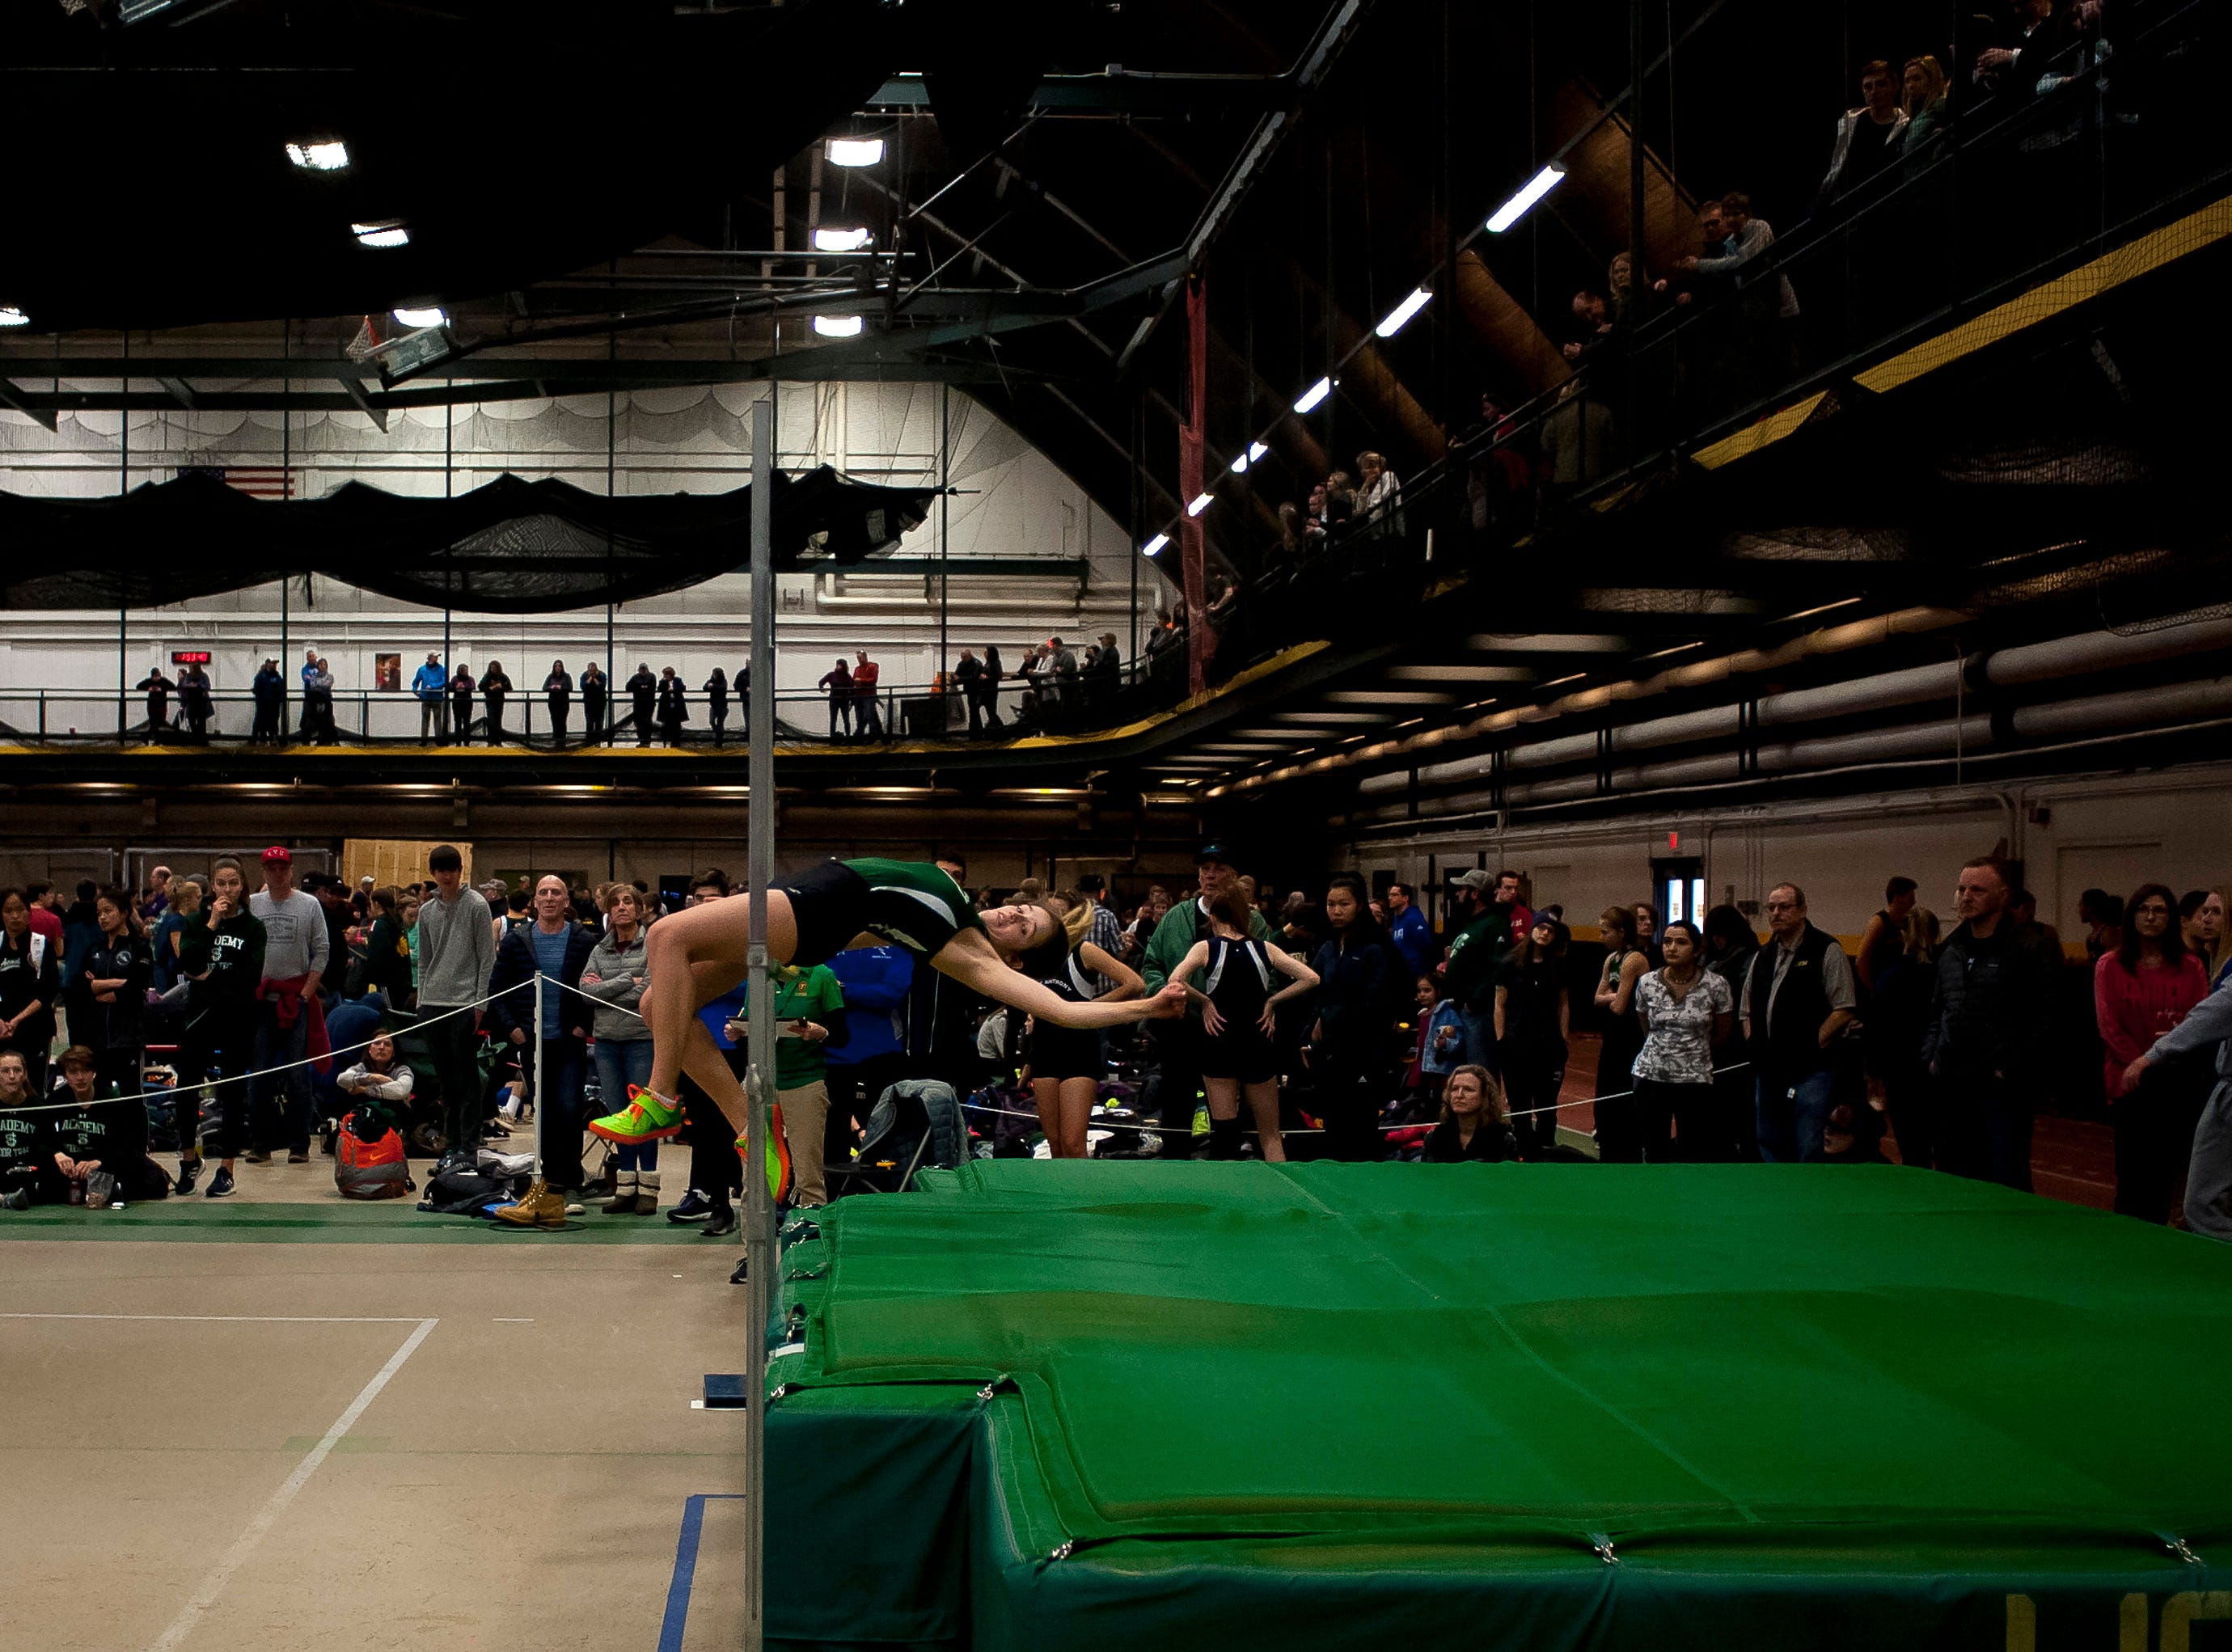 Spectators look on as St. Johnsbury's Isabella Bostic clears the bar in the high jump at the high school indoor track state championships at the University of Vermont on Saturday.